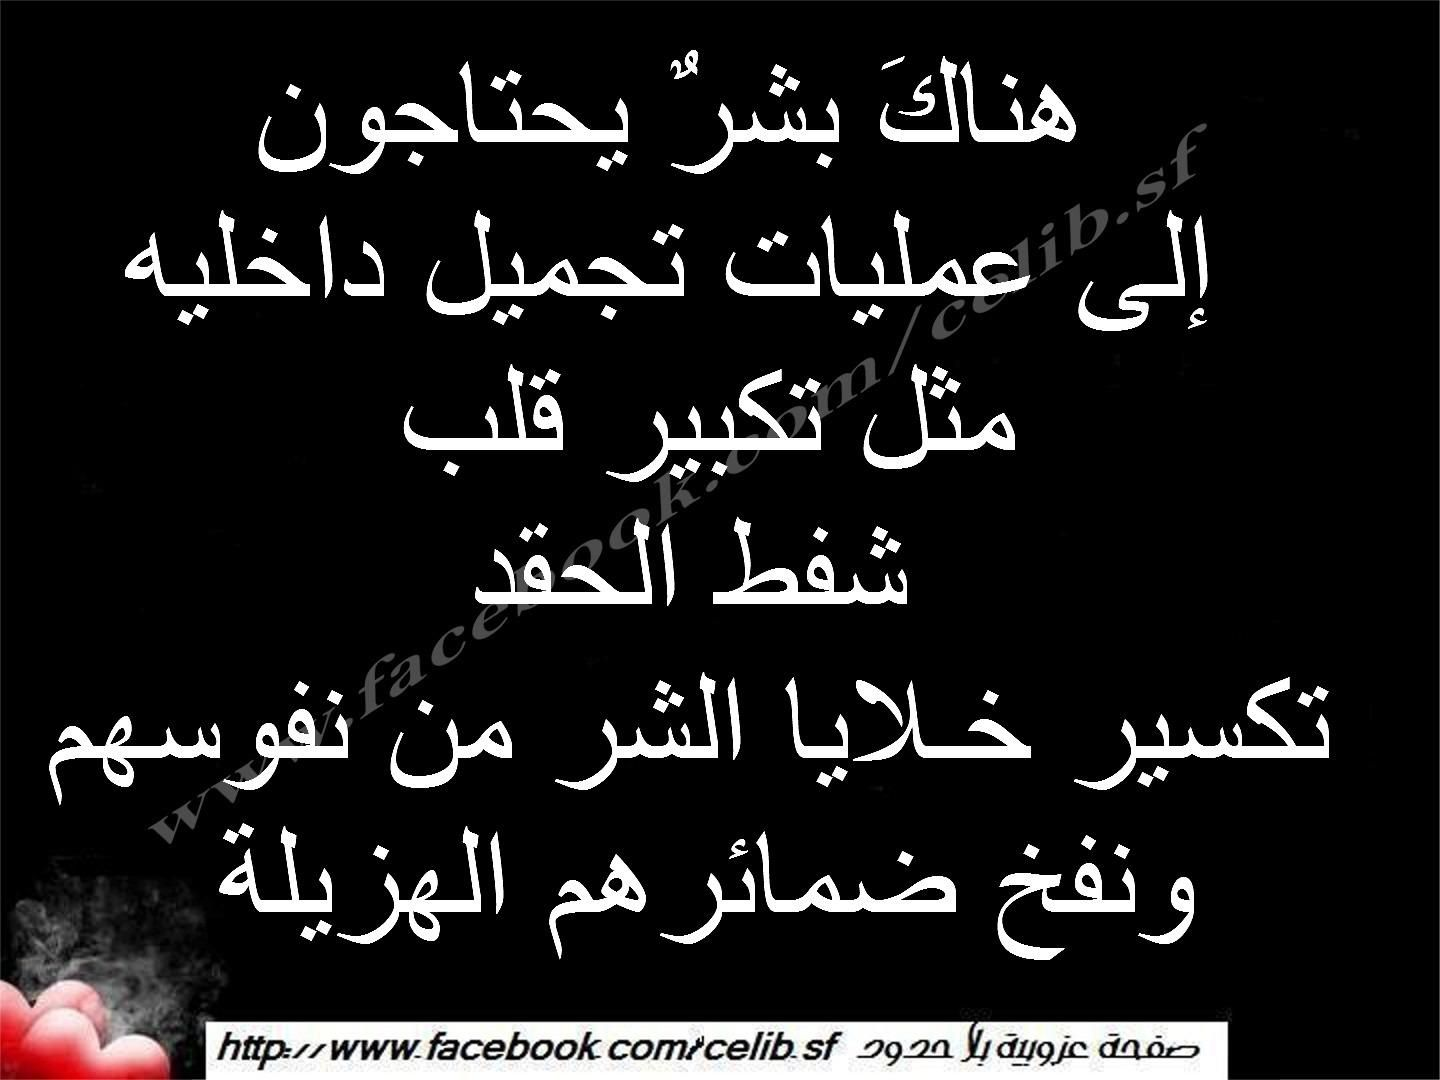 Pin By Ahmed Saqr On مجرد كلام يمكن Words Quotes Arabic Quotes Quotes